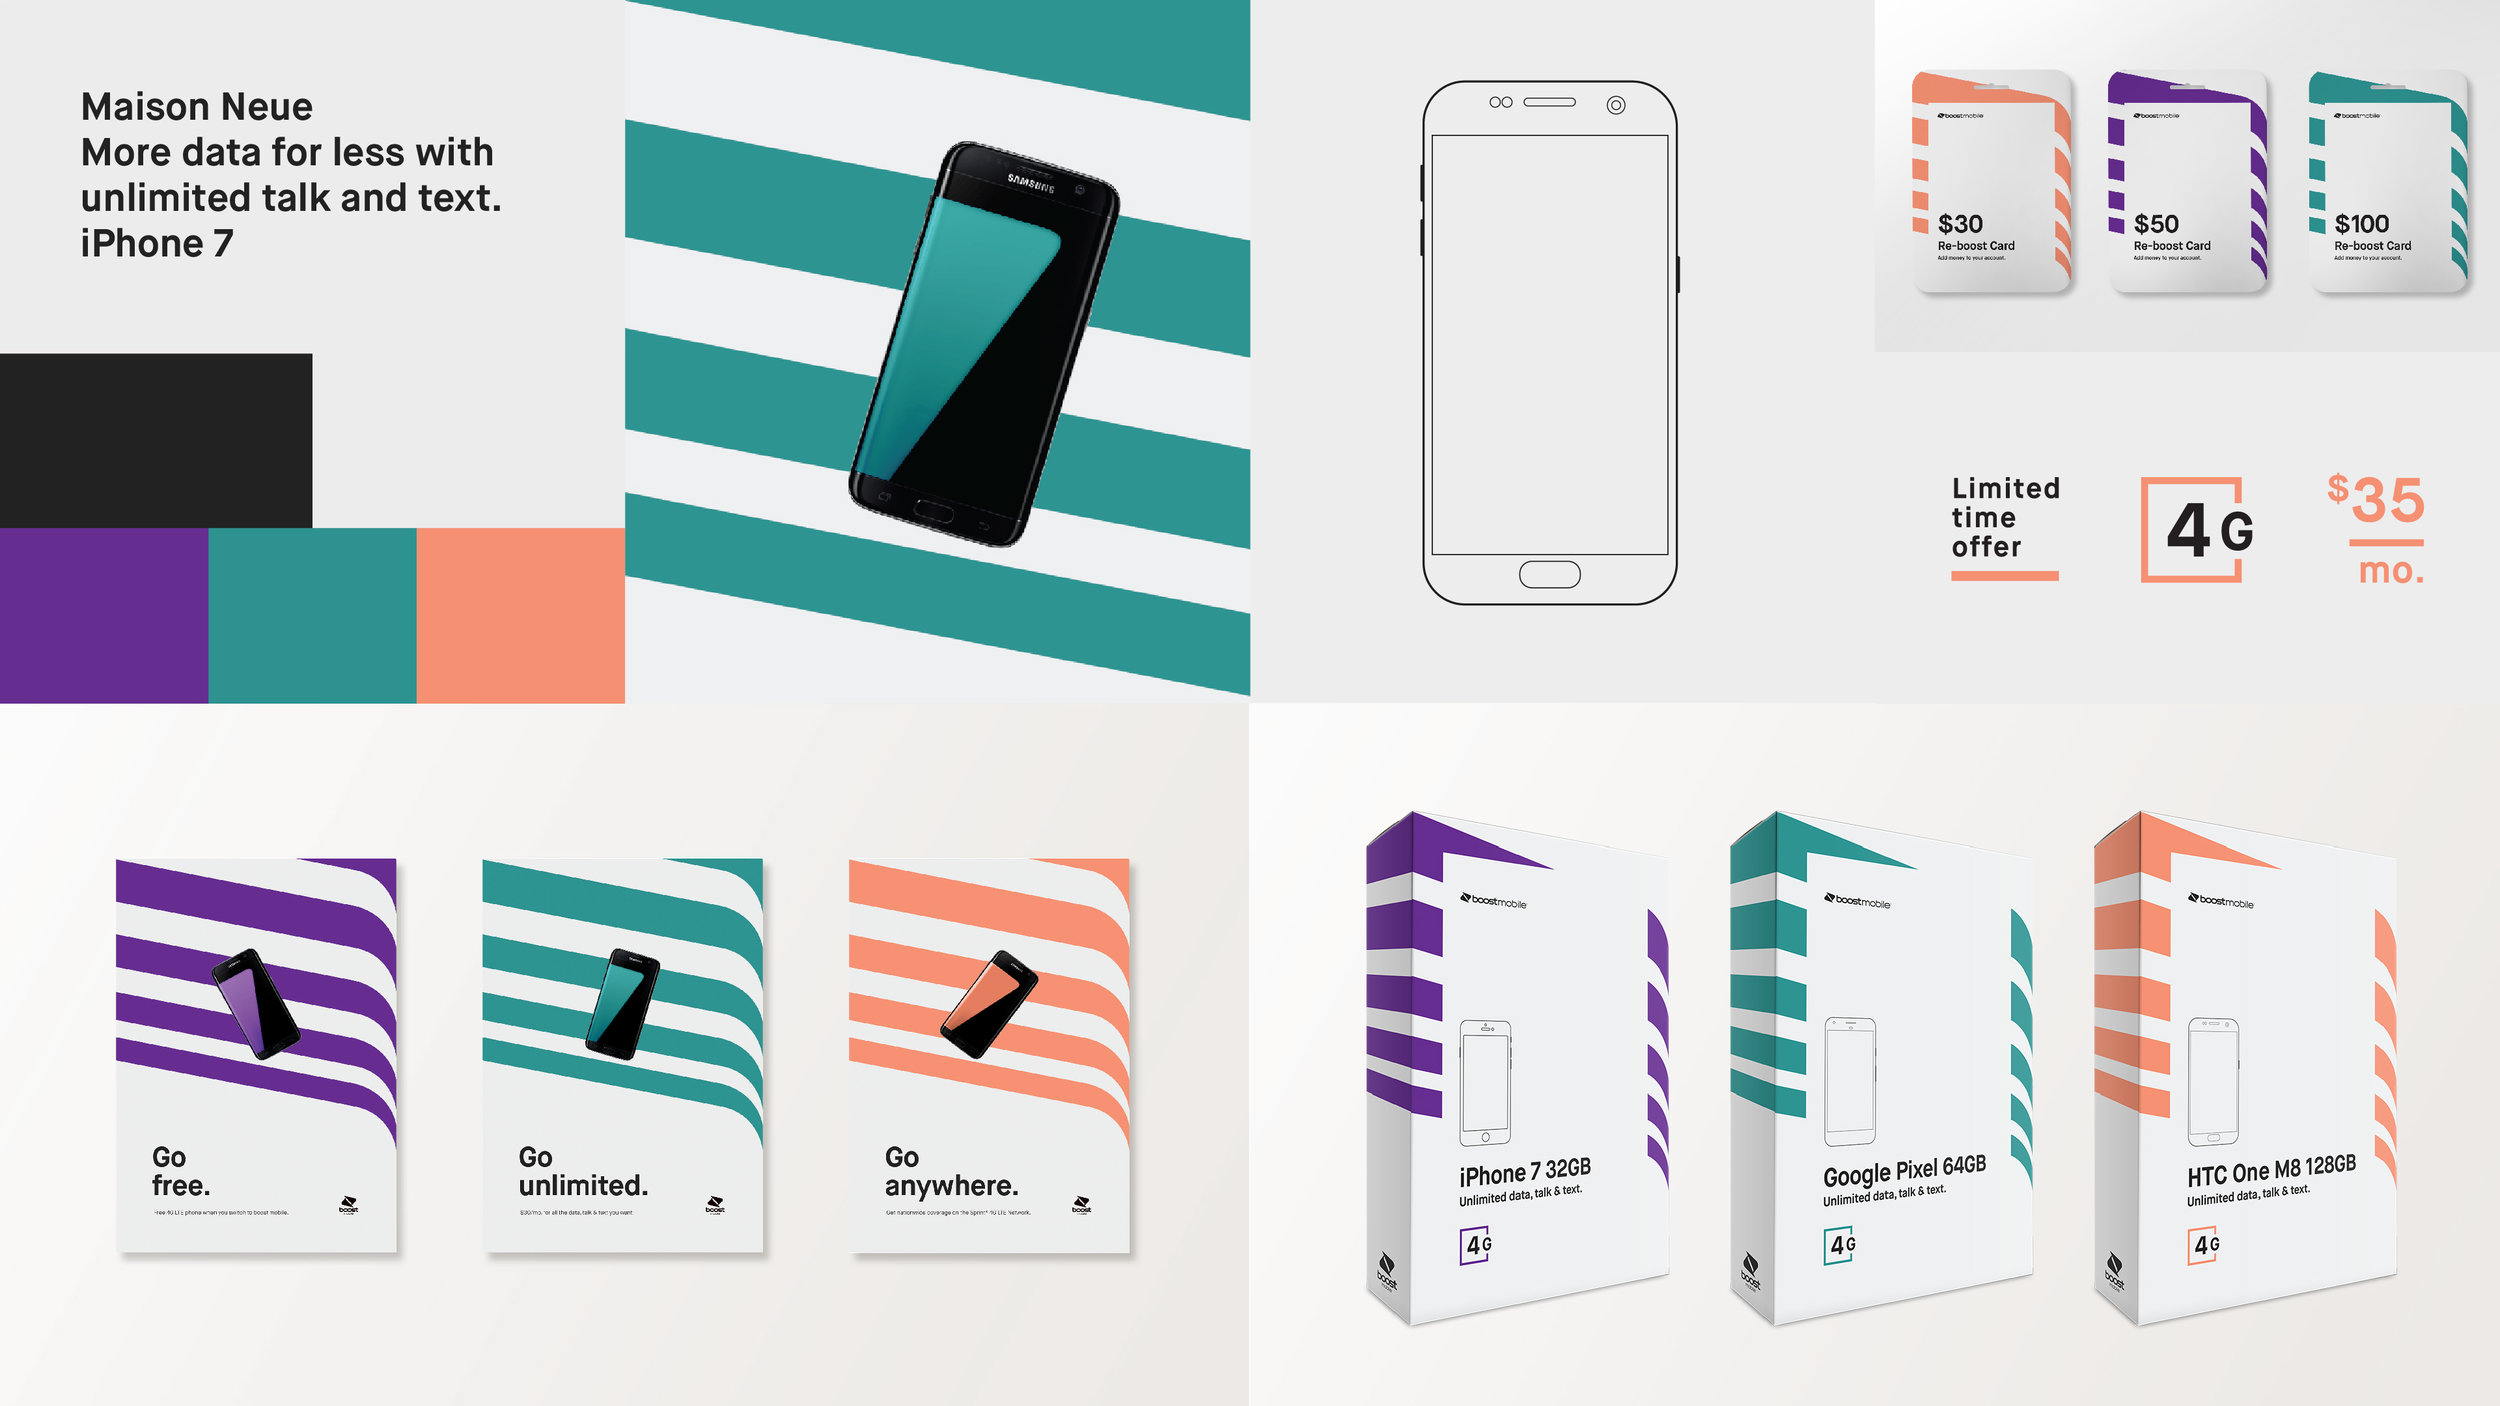 Boost Mobile - I had the chance to work on a Boost Mobile pitch with a super talented creative director and amazing art director. This is what we came up with.